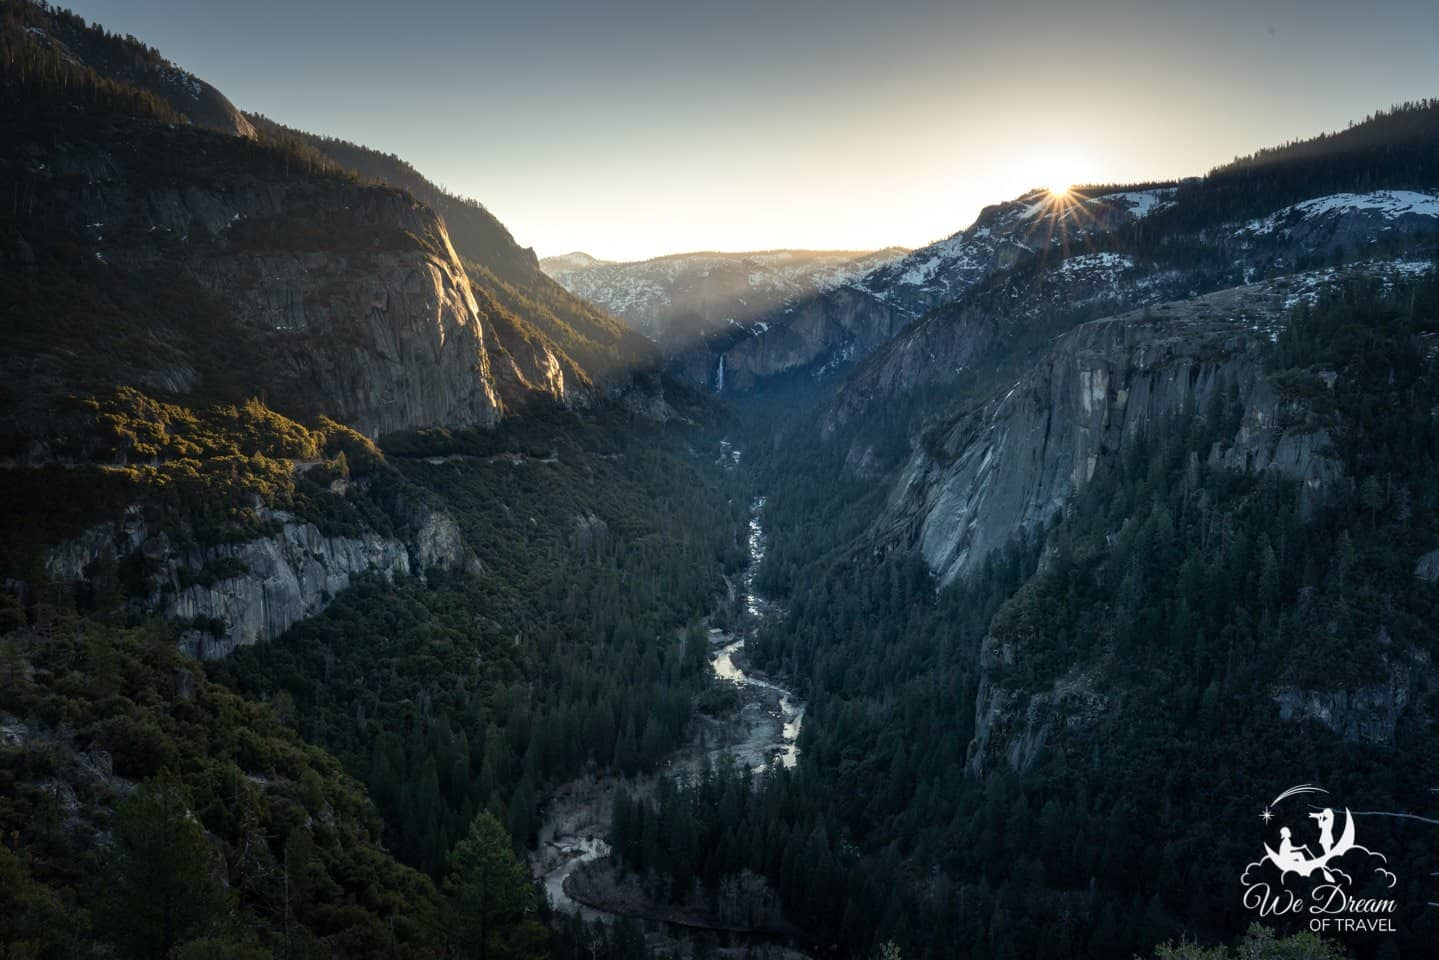 Sunrise photography from Hwy 120 in Yosemite National Park.